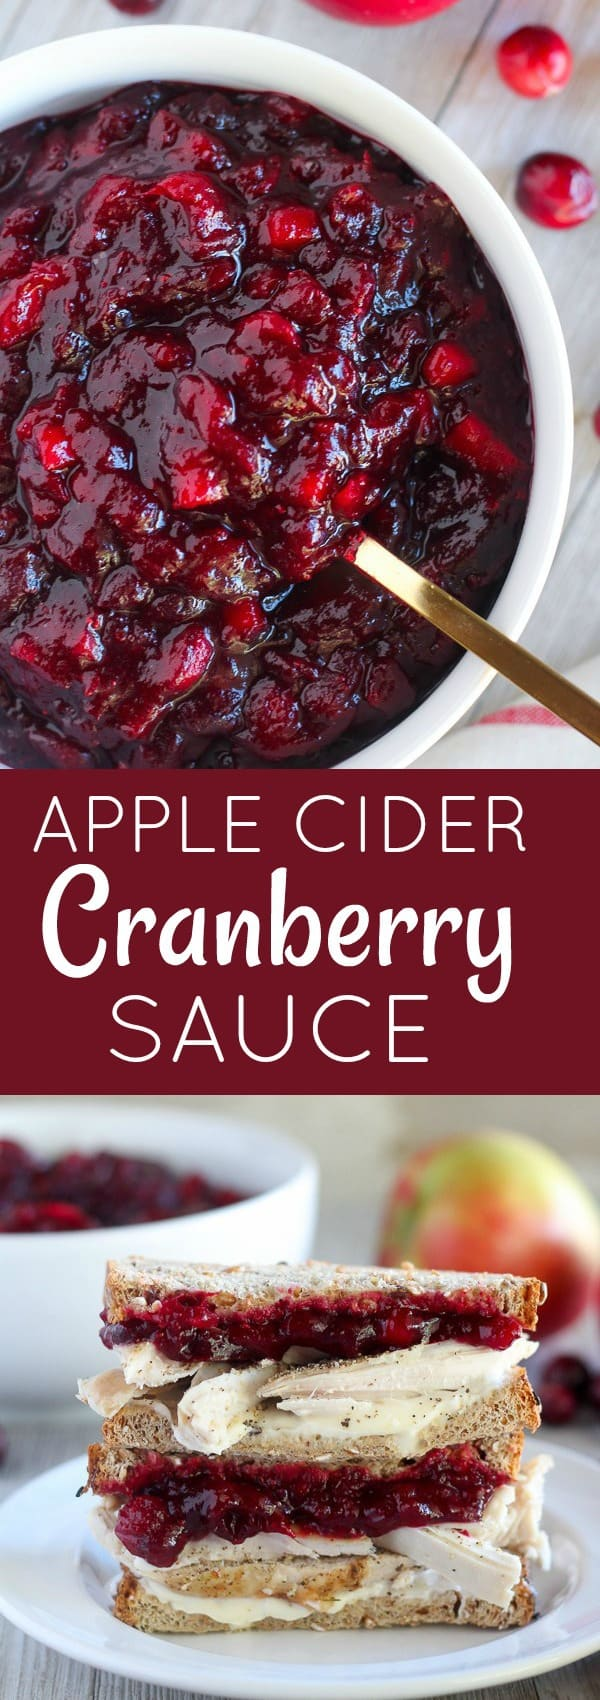 Apple Cider Cranberry Sauce - The perfect quick and easy cranberry sauce for Thanksgiving!